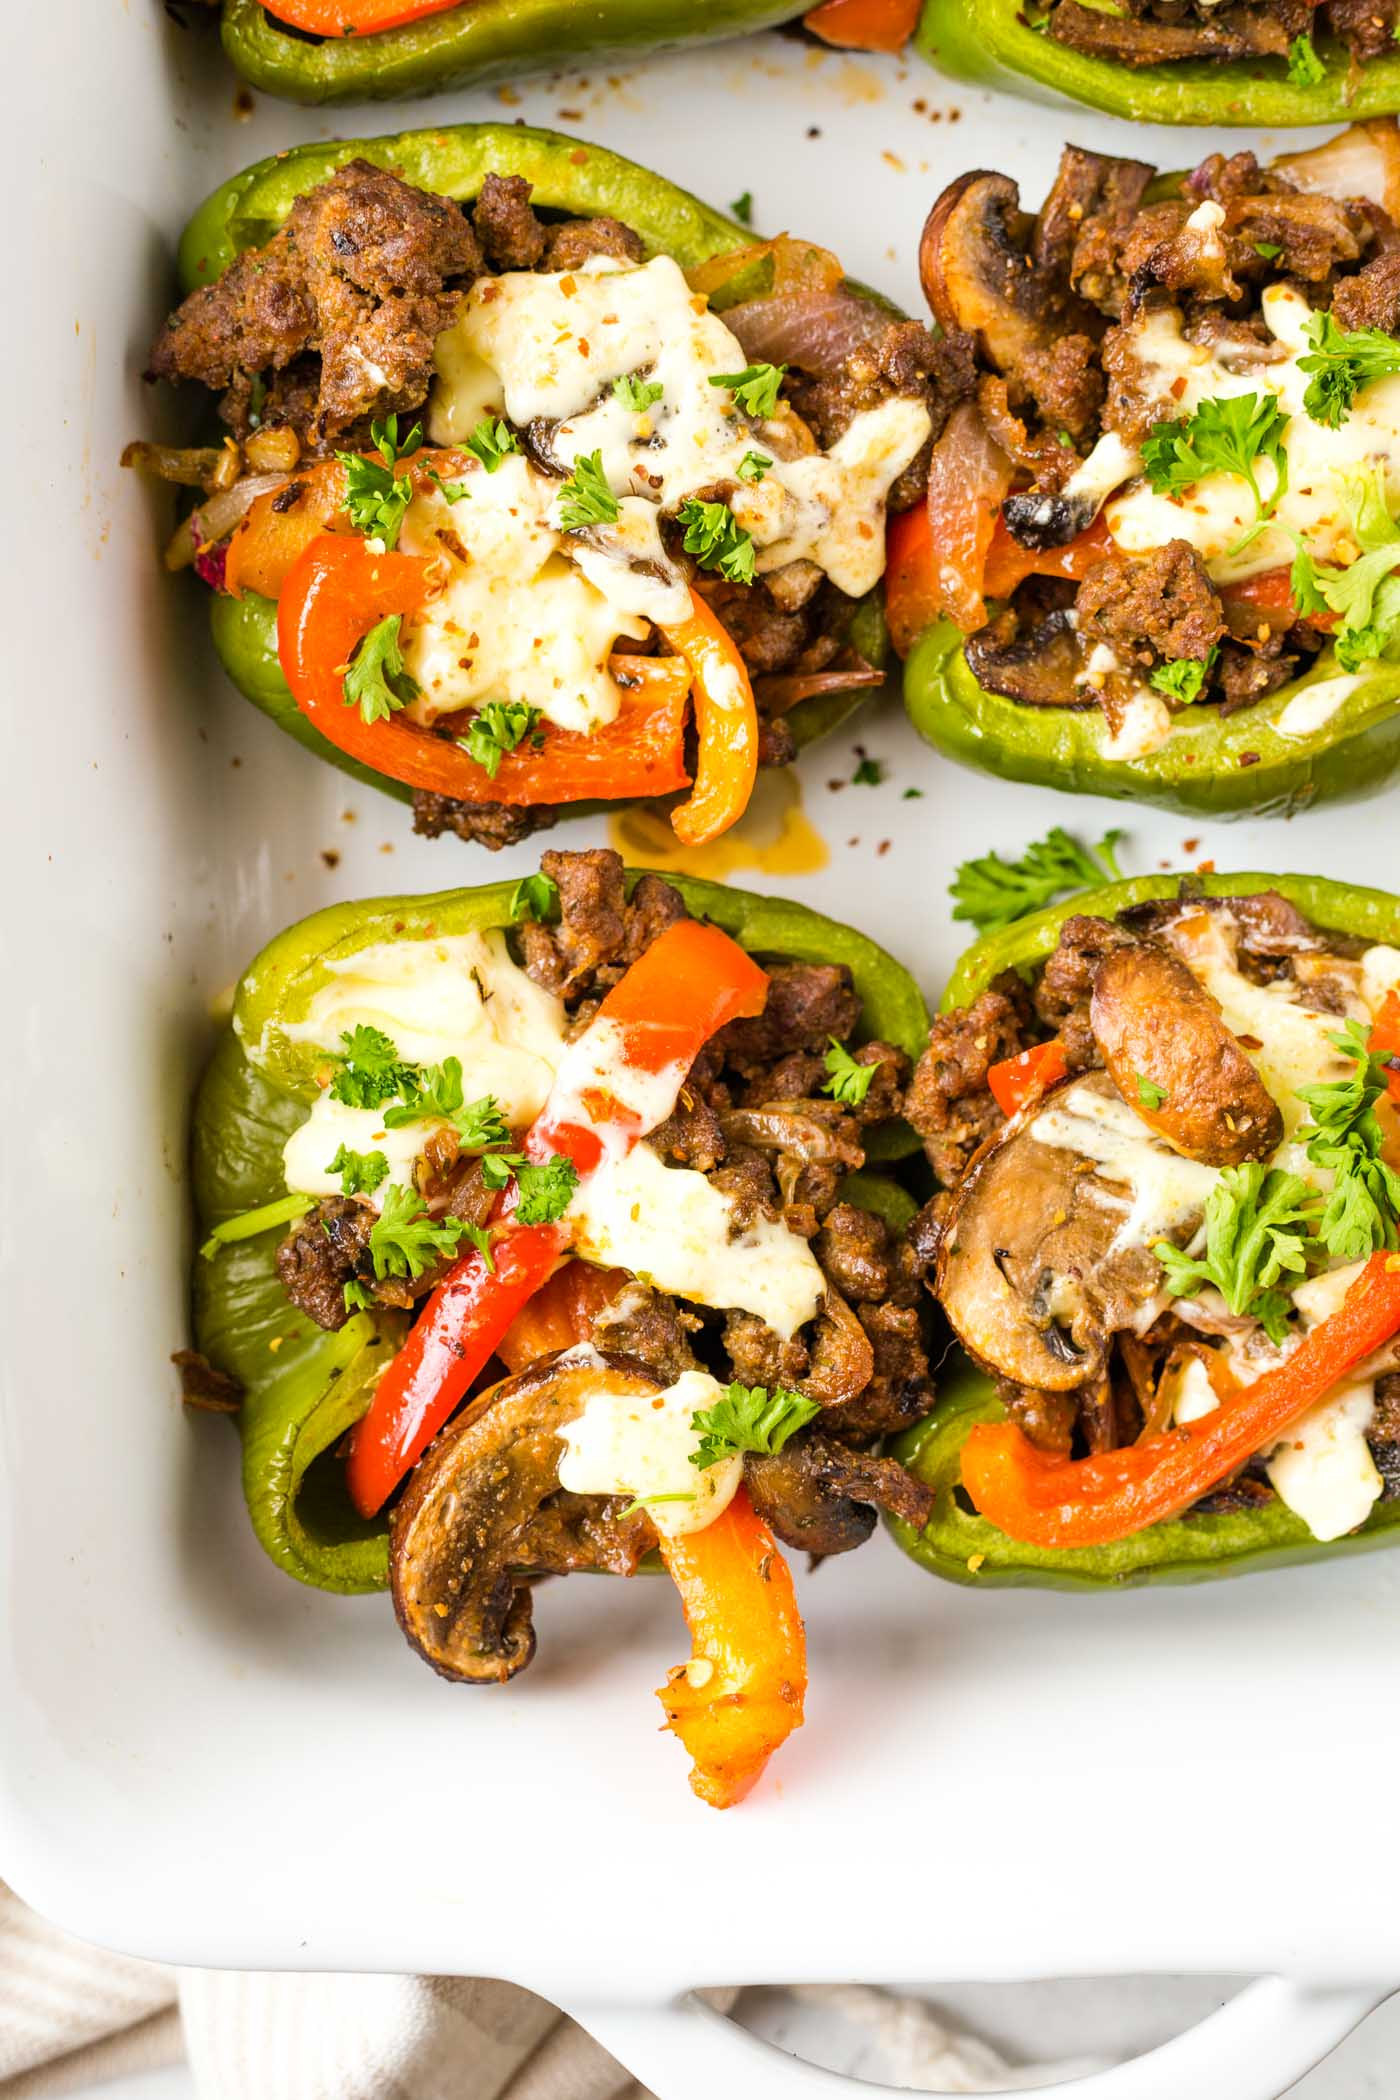 Halved green bell peppers stuffed with ground beef, red bell peppers, onion, and mushrooms